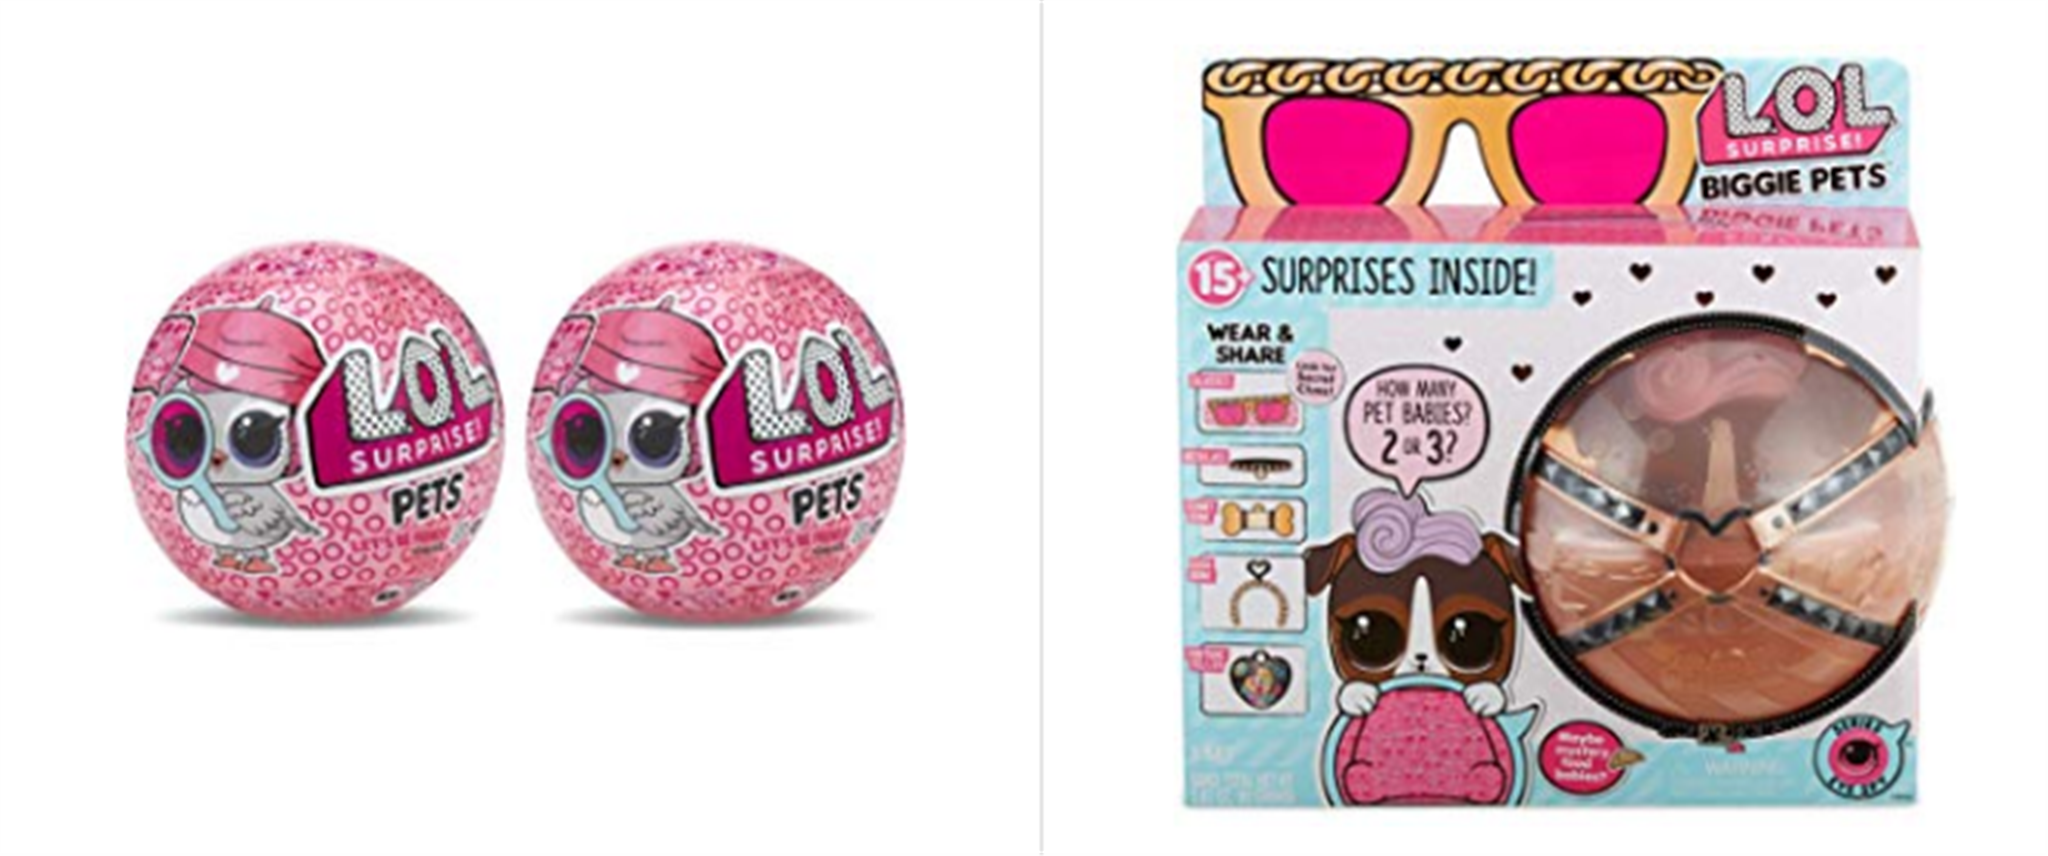 Amazon – Save up to 65% on Select L.O.L Surprise! Biggie Pet Cottontail Q.T. Only $13.99, Reg $39.99 And Lots More!